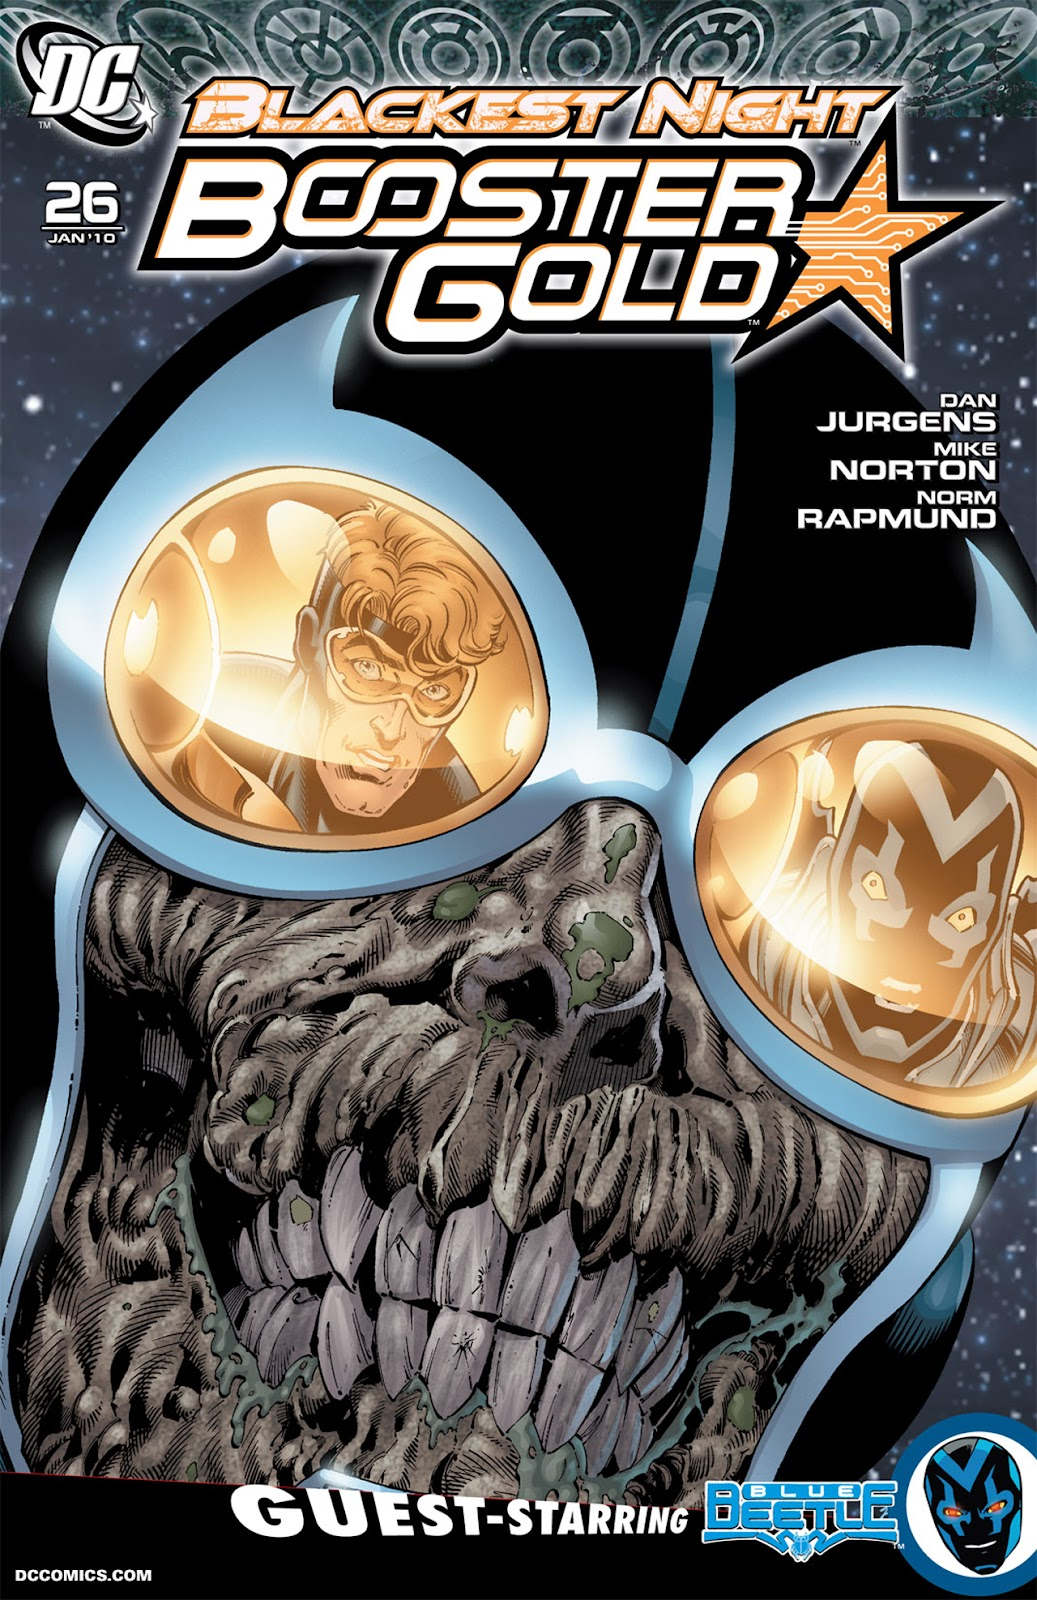 Booster Gold (2007) issue 26 - Page 1